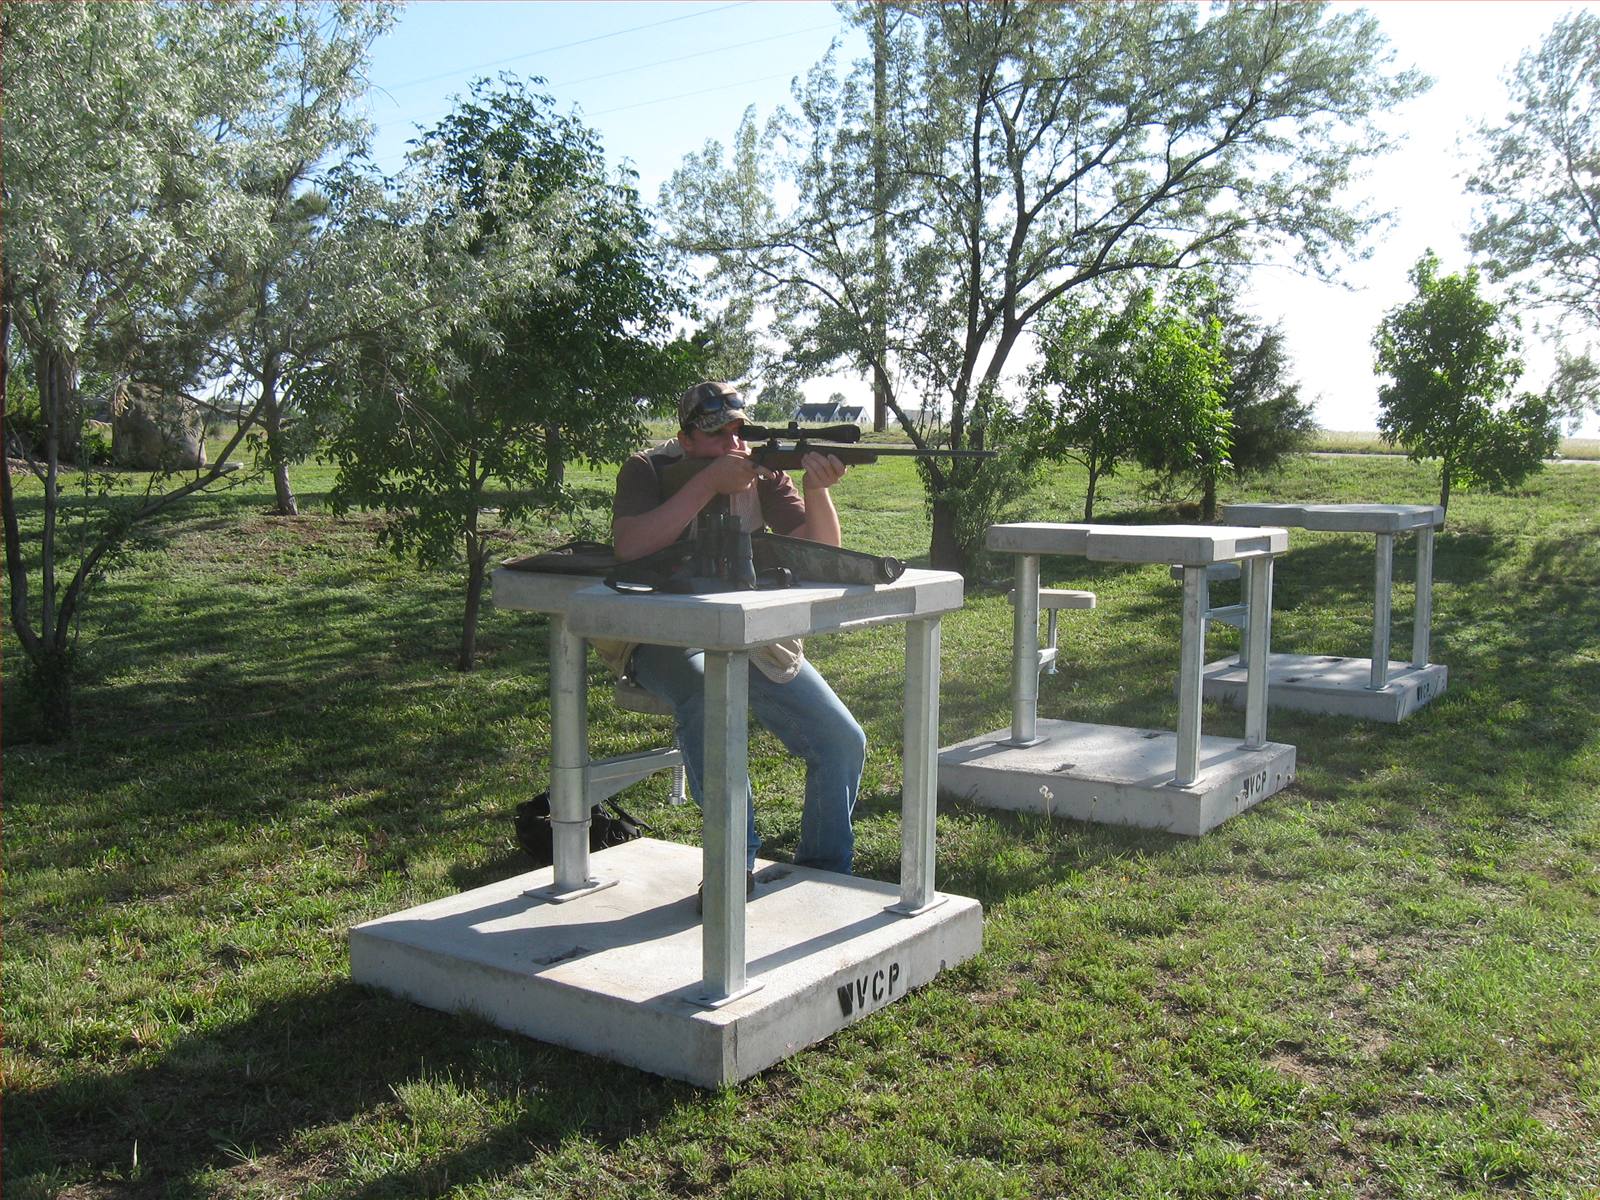 How to Build A Shooting Bench | Homemade Portable Shooting Bench Plans | Wooden Shooting Bench Plans